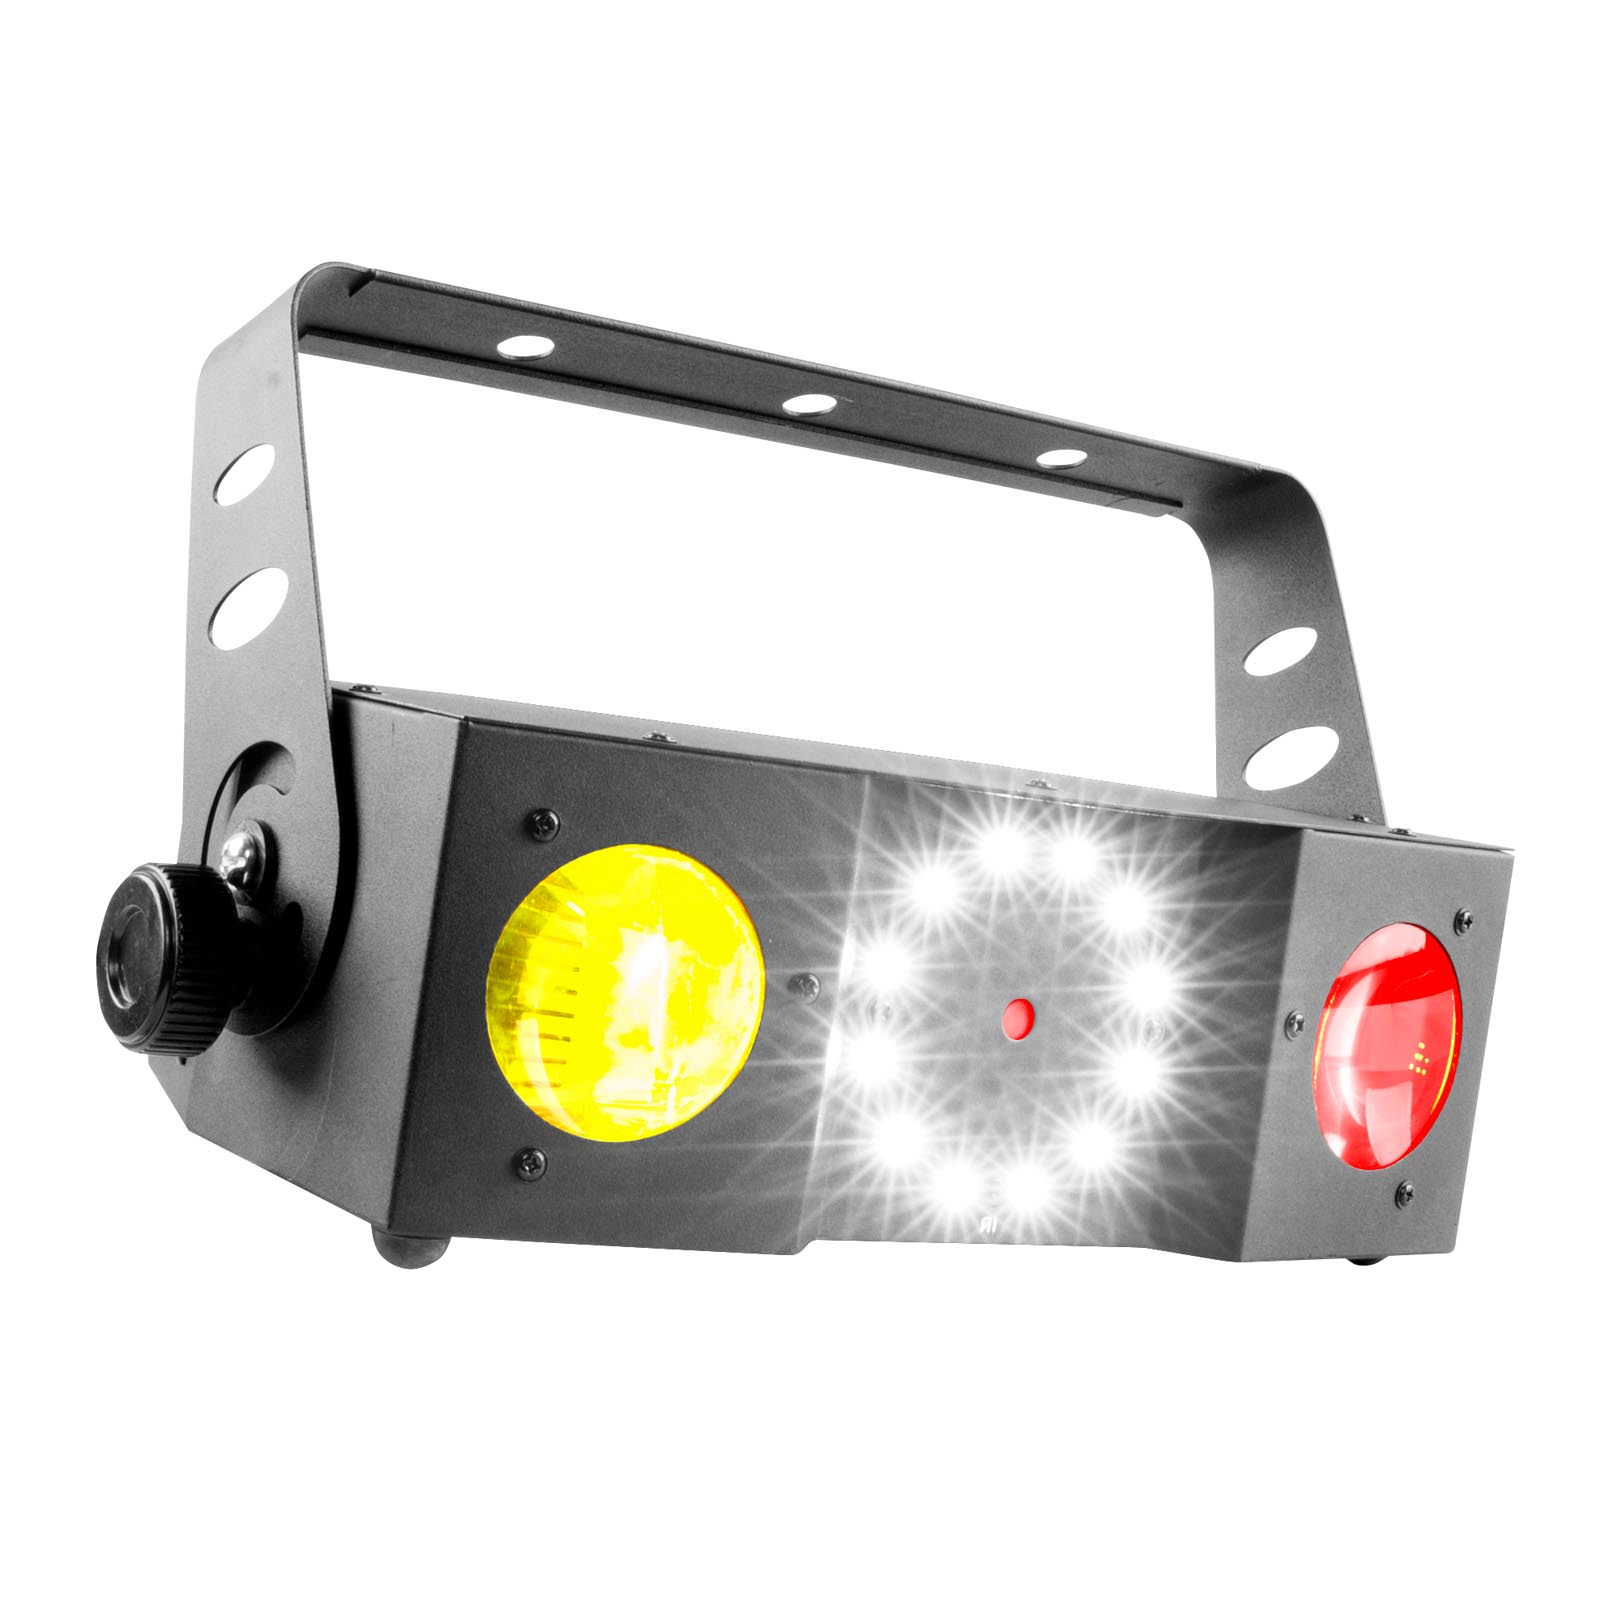 Chauvet DJ Swarm 4 FX DMX Dual LED Moonflower RGBA Light Effect w Strobe & Laser by Chauvet Dj